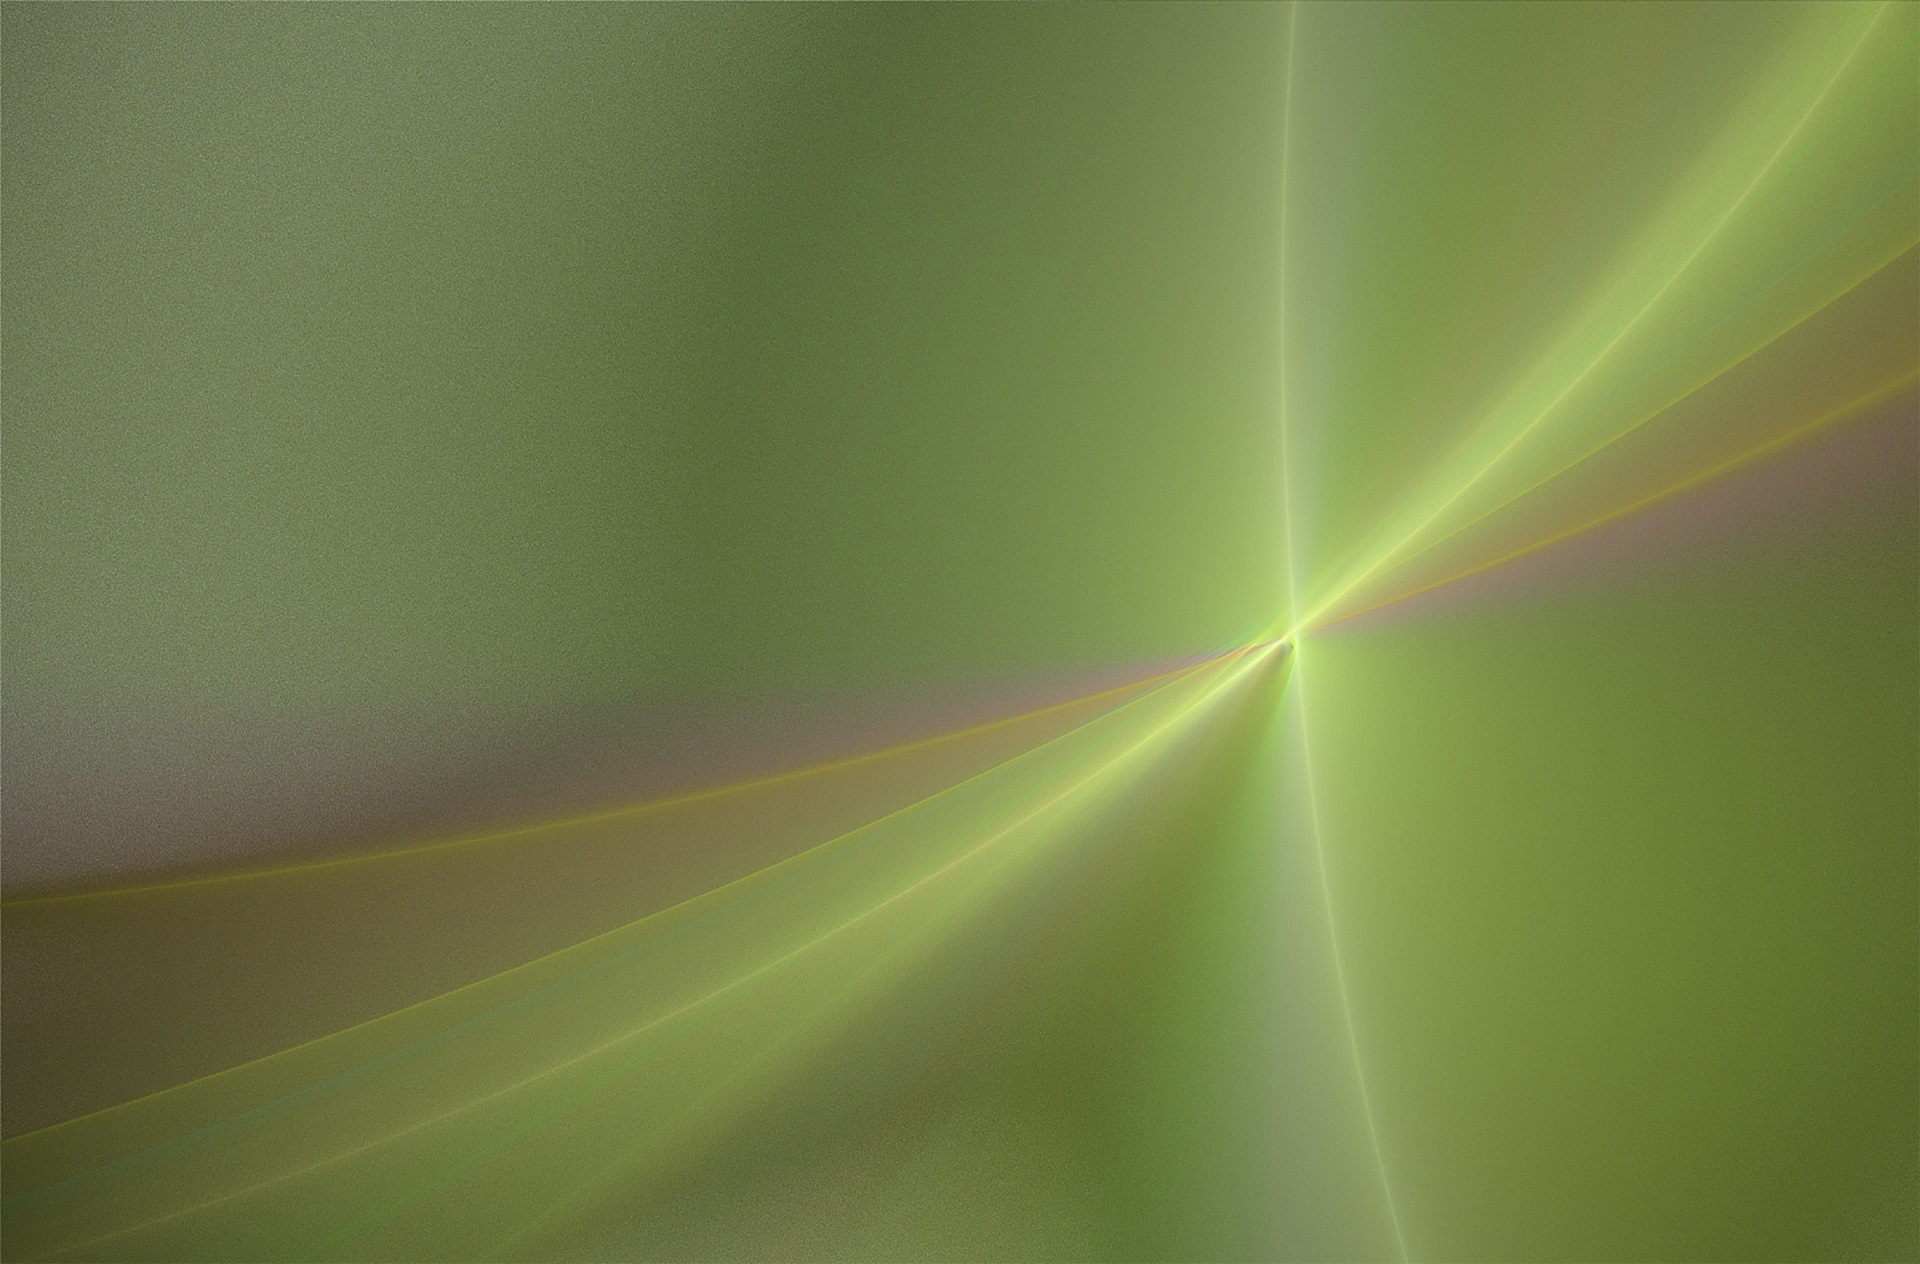 fractal green texture wallpaper background